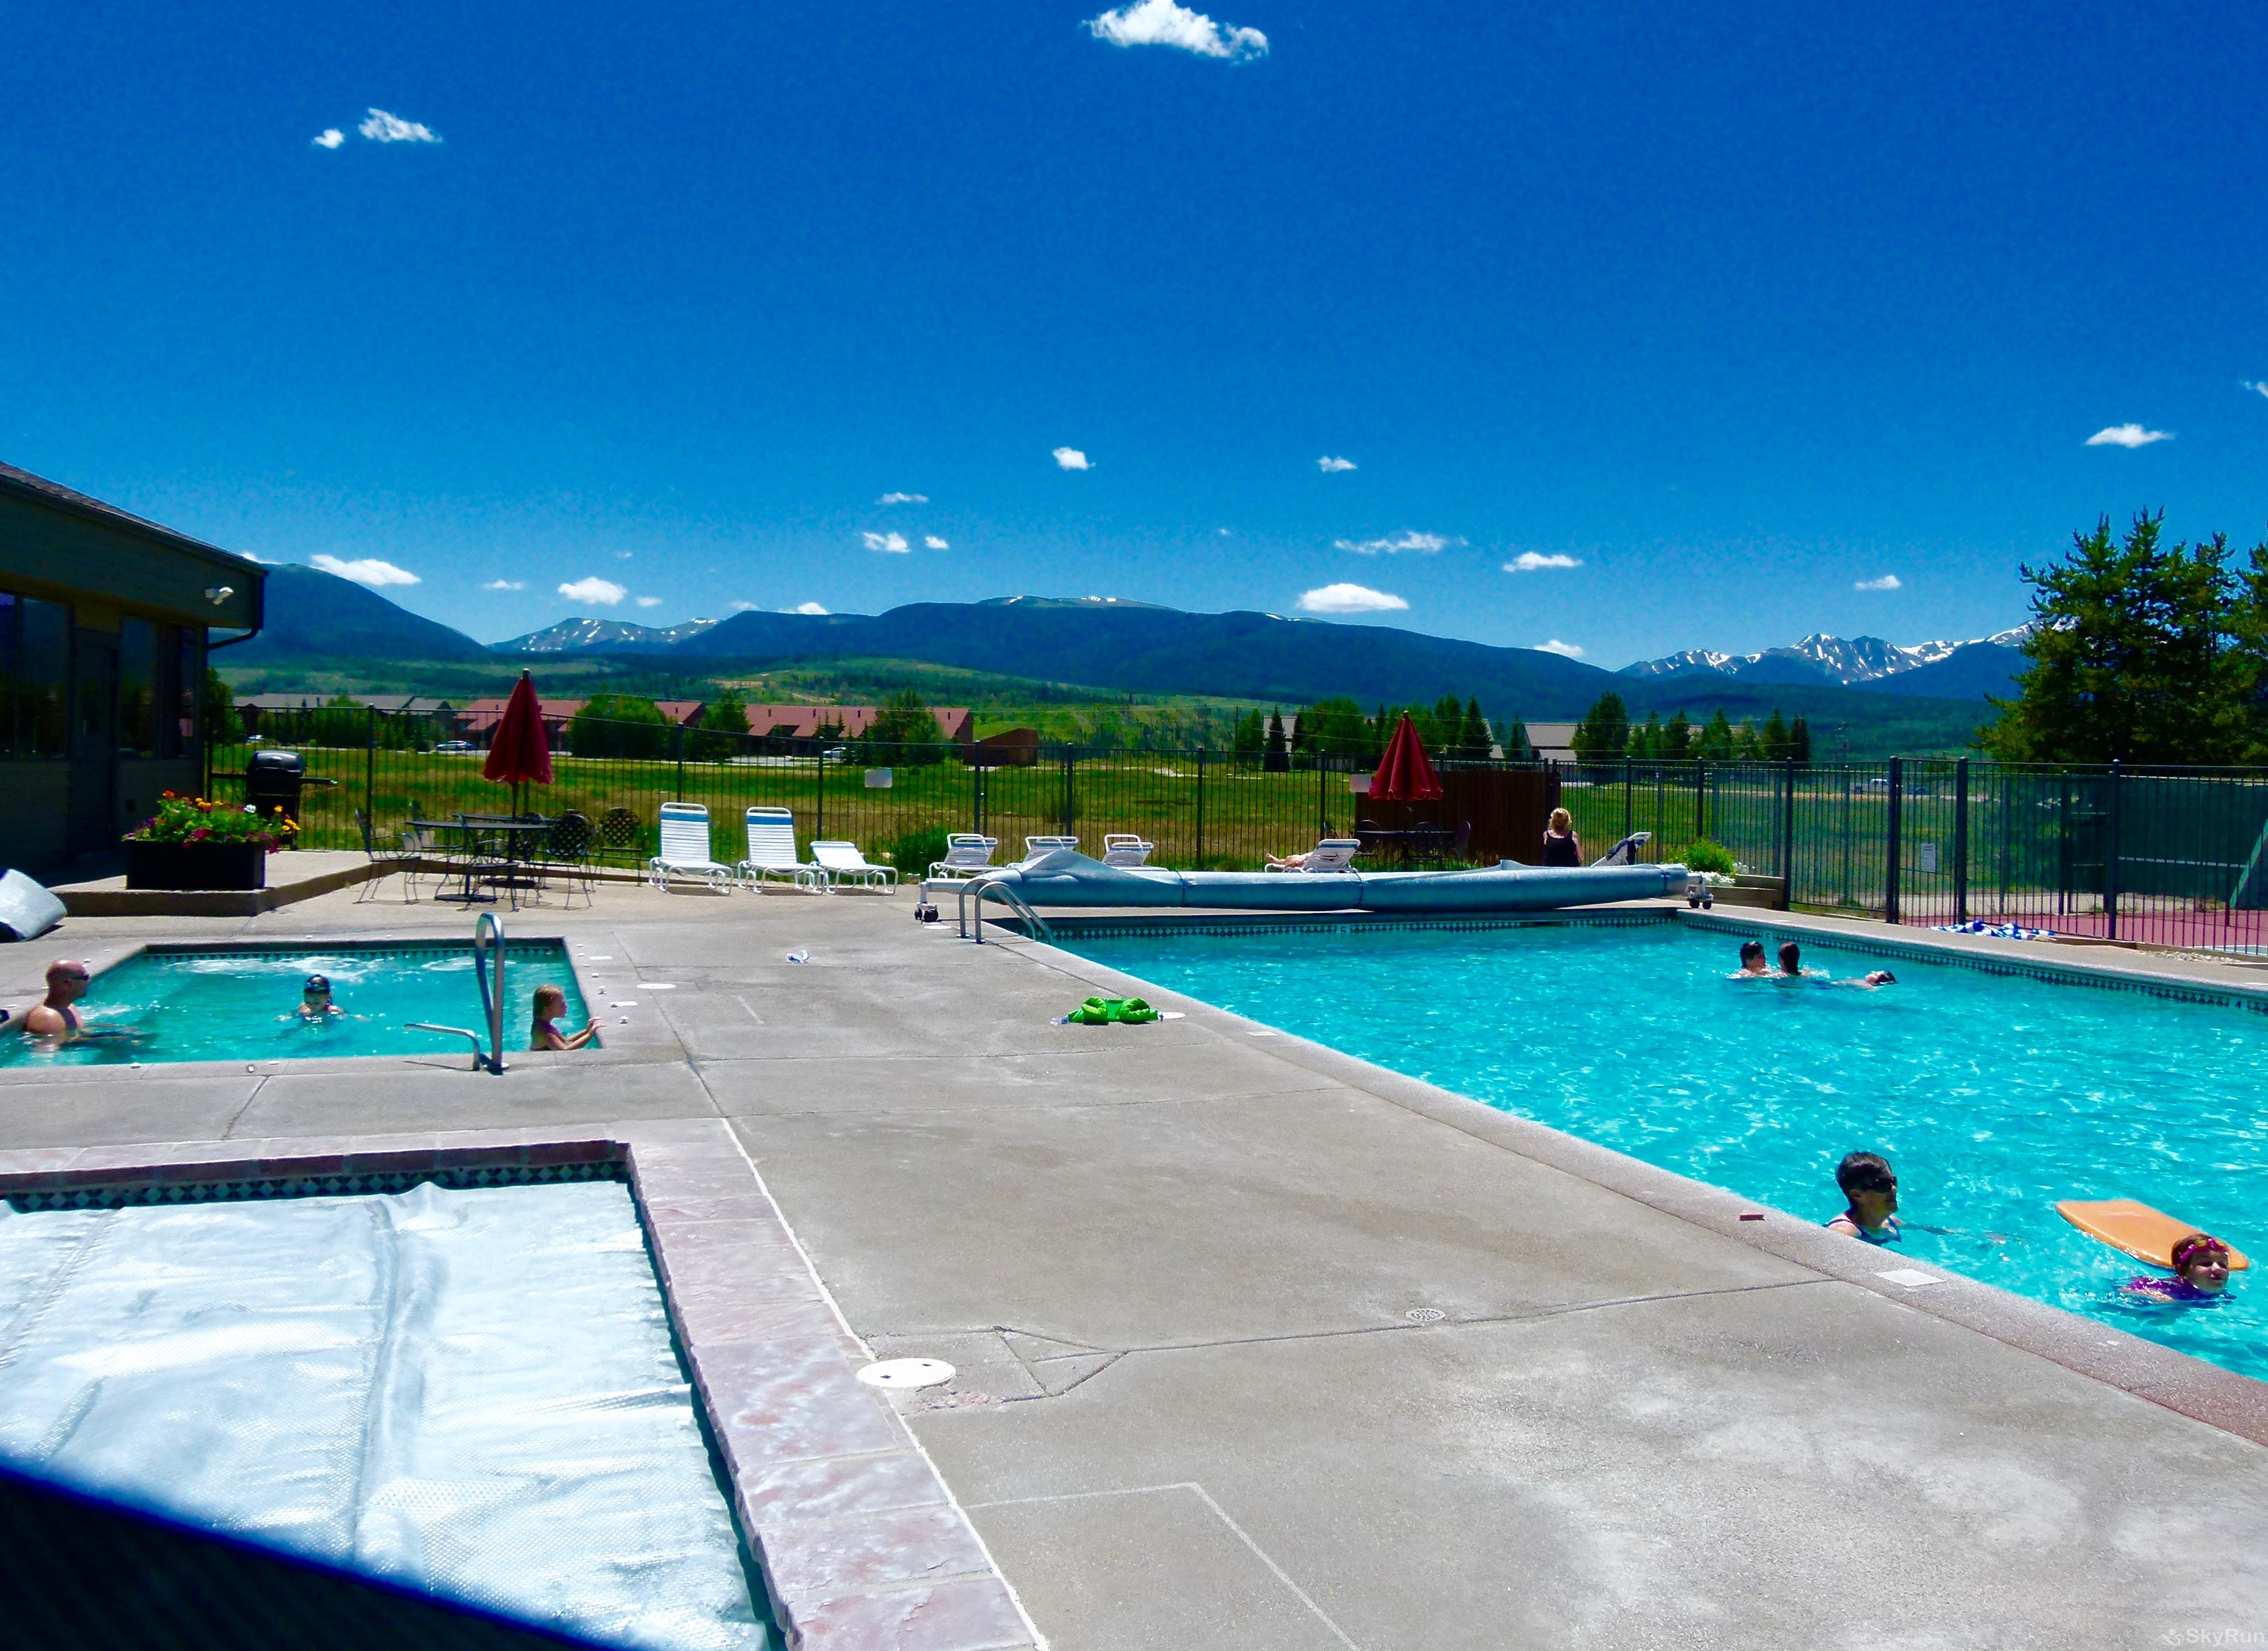 Meadow Ridge Court 4 Unit 5 Year Round Outdoor Pool with Views!